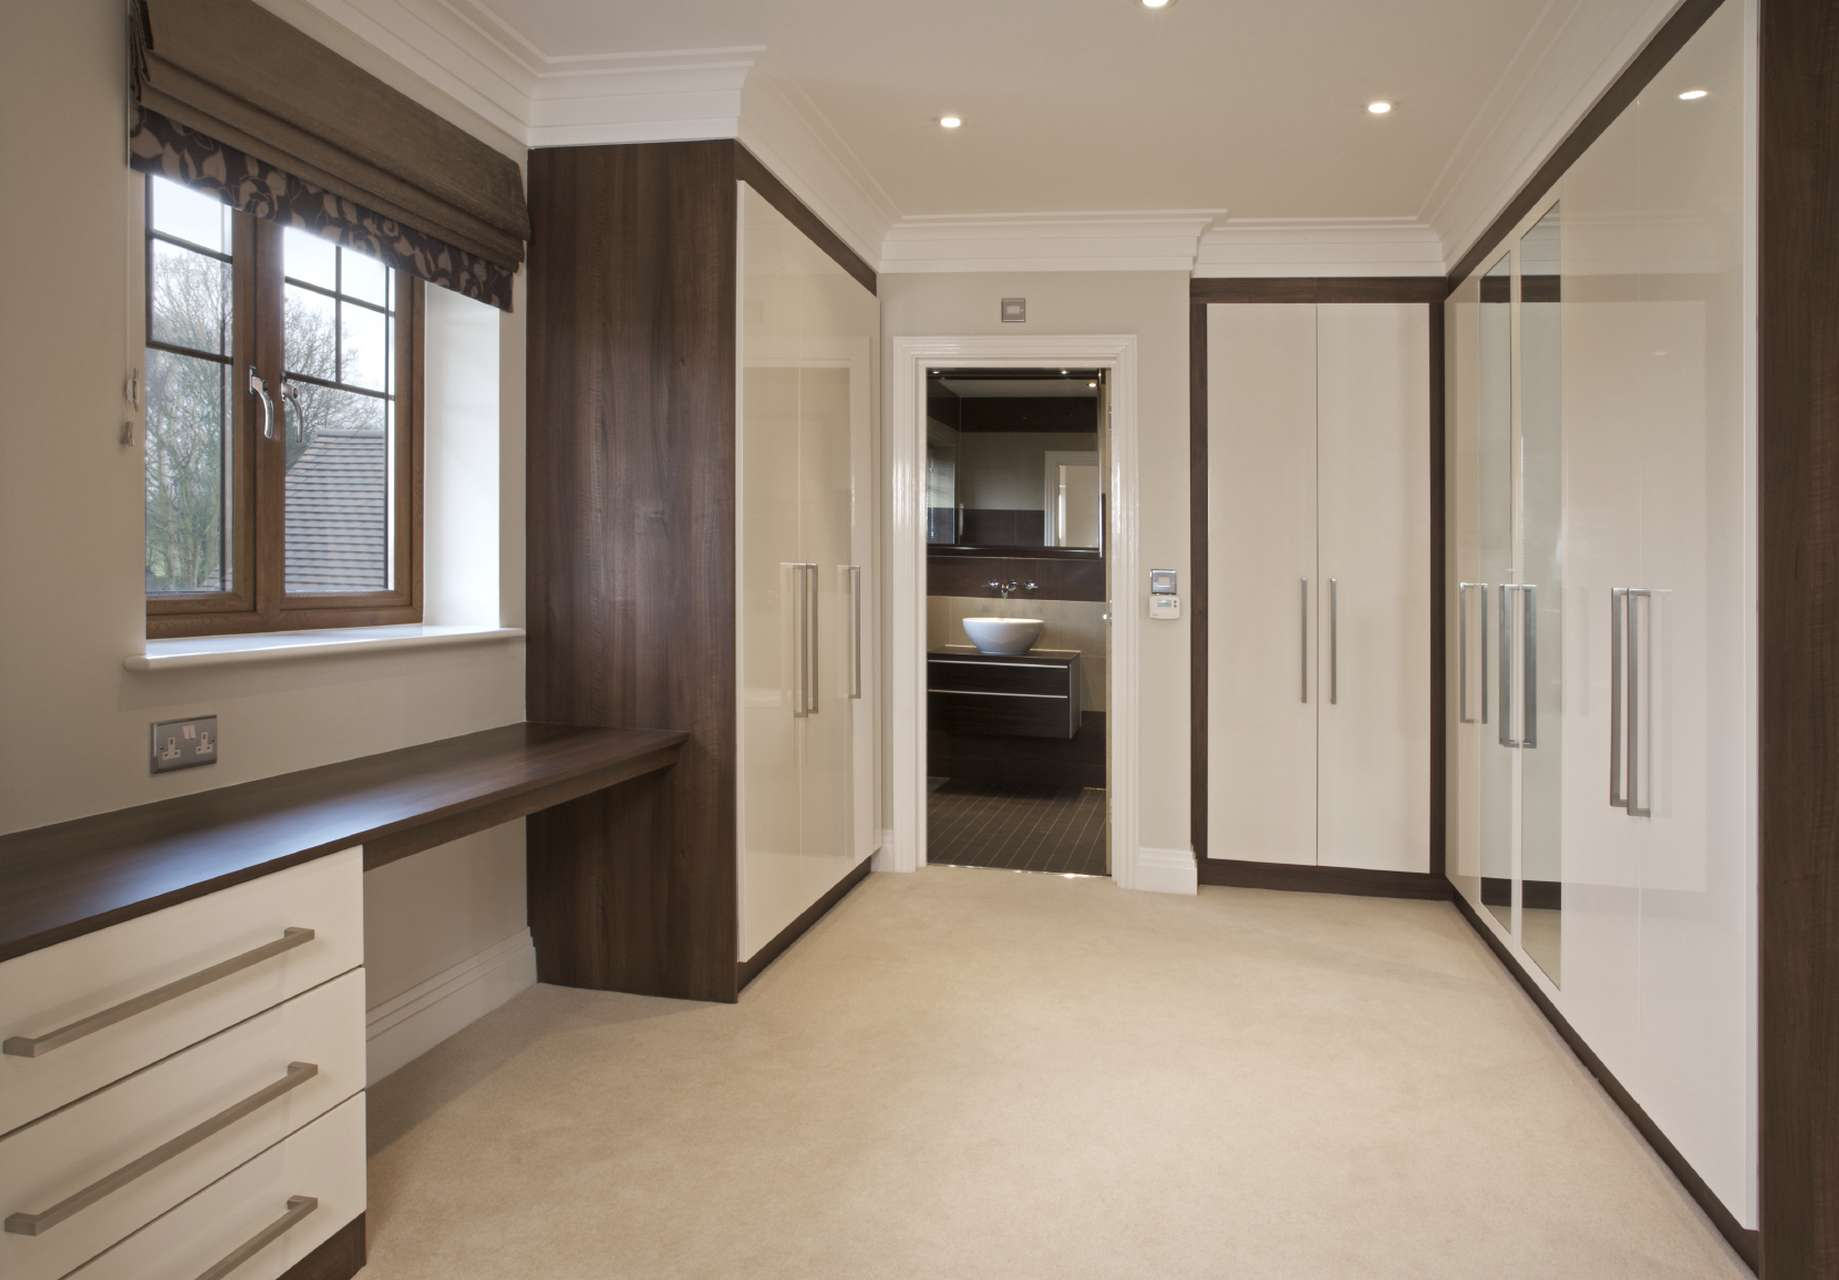 A walk in wardrobe with hinged doors